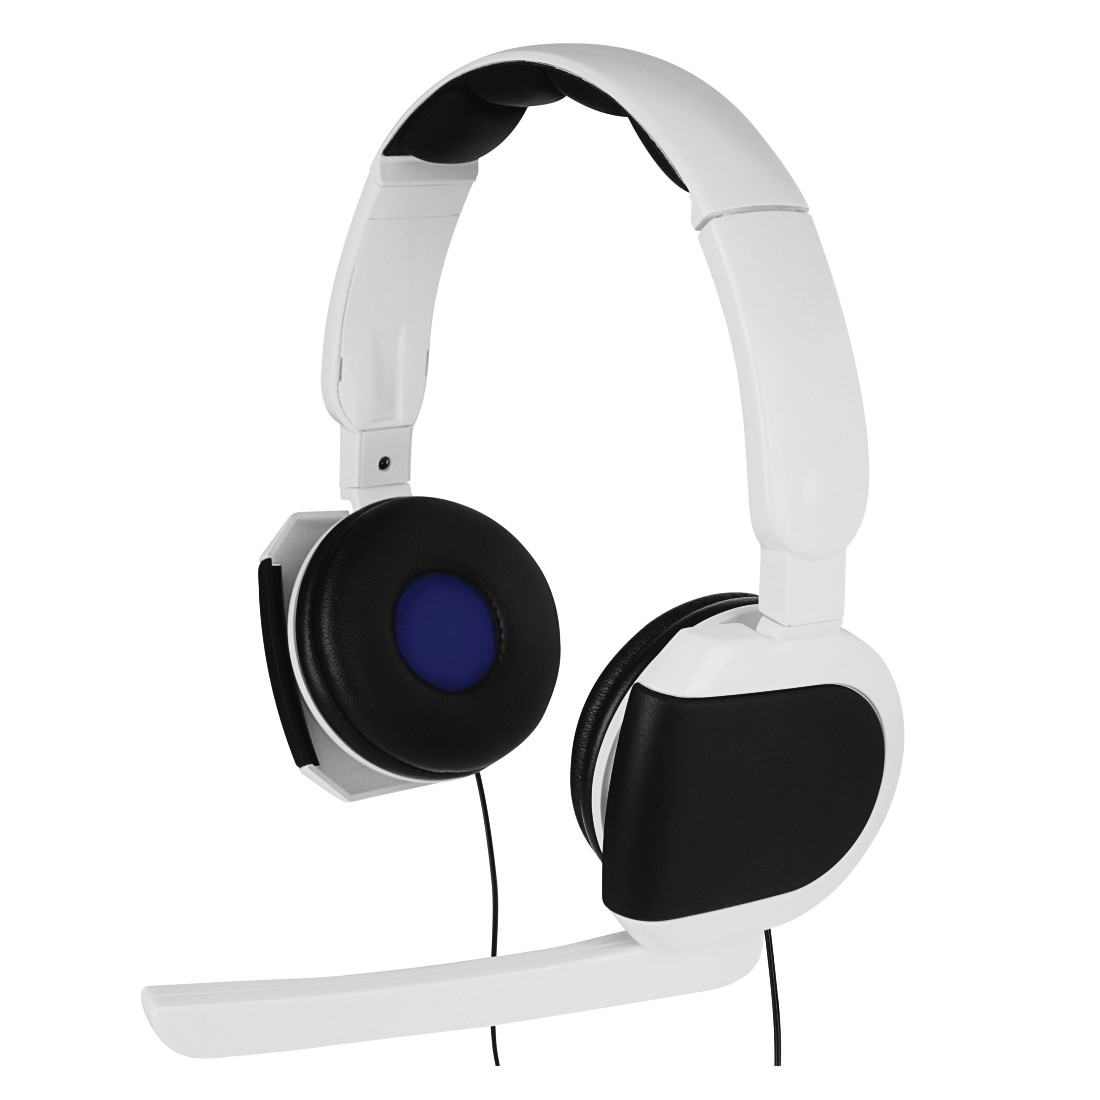 abx High-Res Image - Hama, Insomnia VR Stereo Overhead Headset for PS4/PS VR